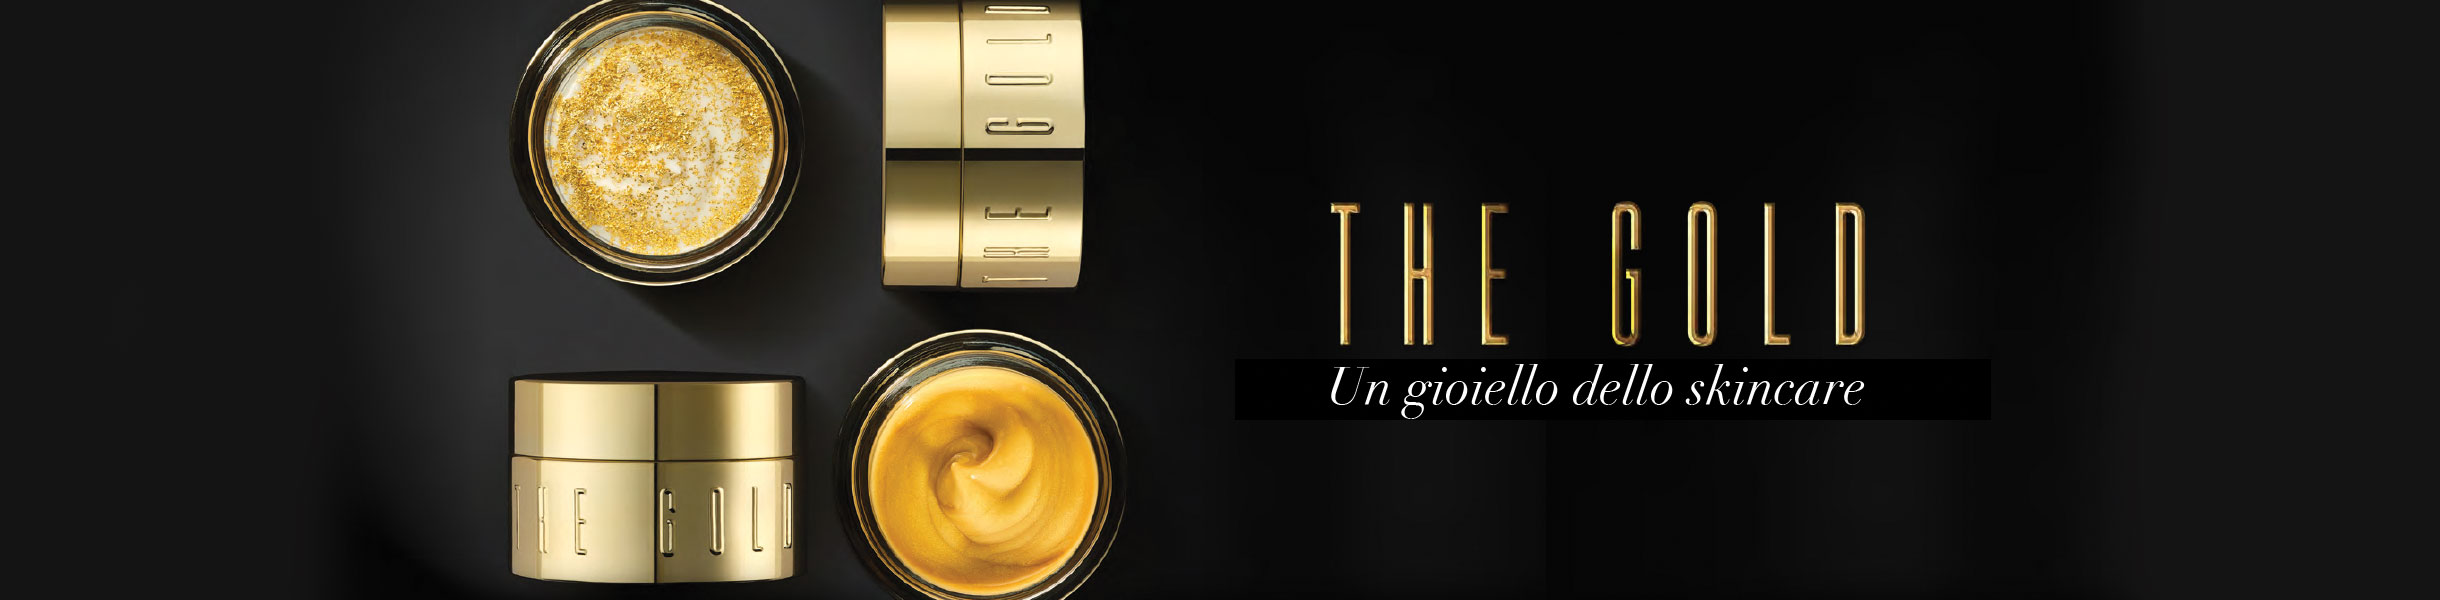 THE GOLD - TRATTAMENTO ANTI ETA' CON ORO